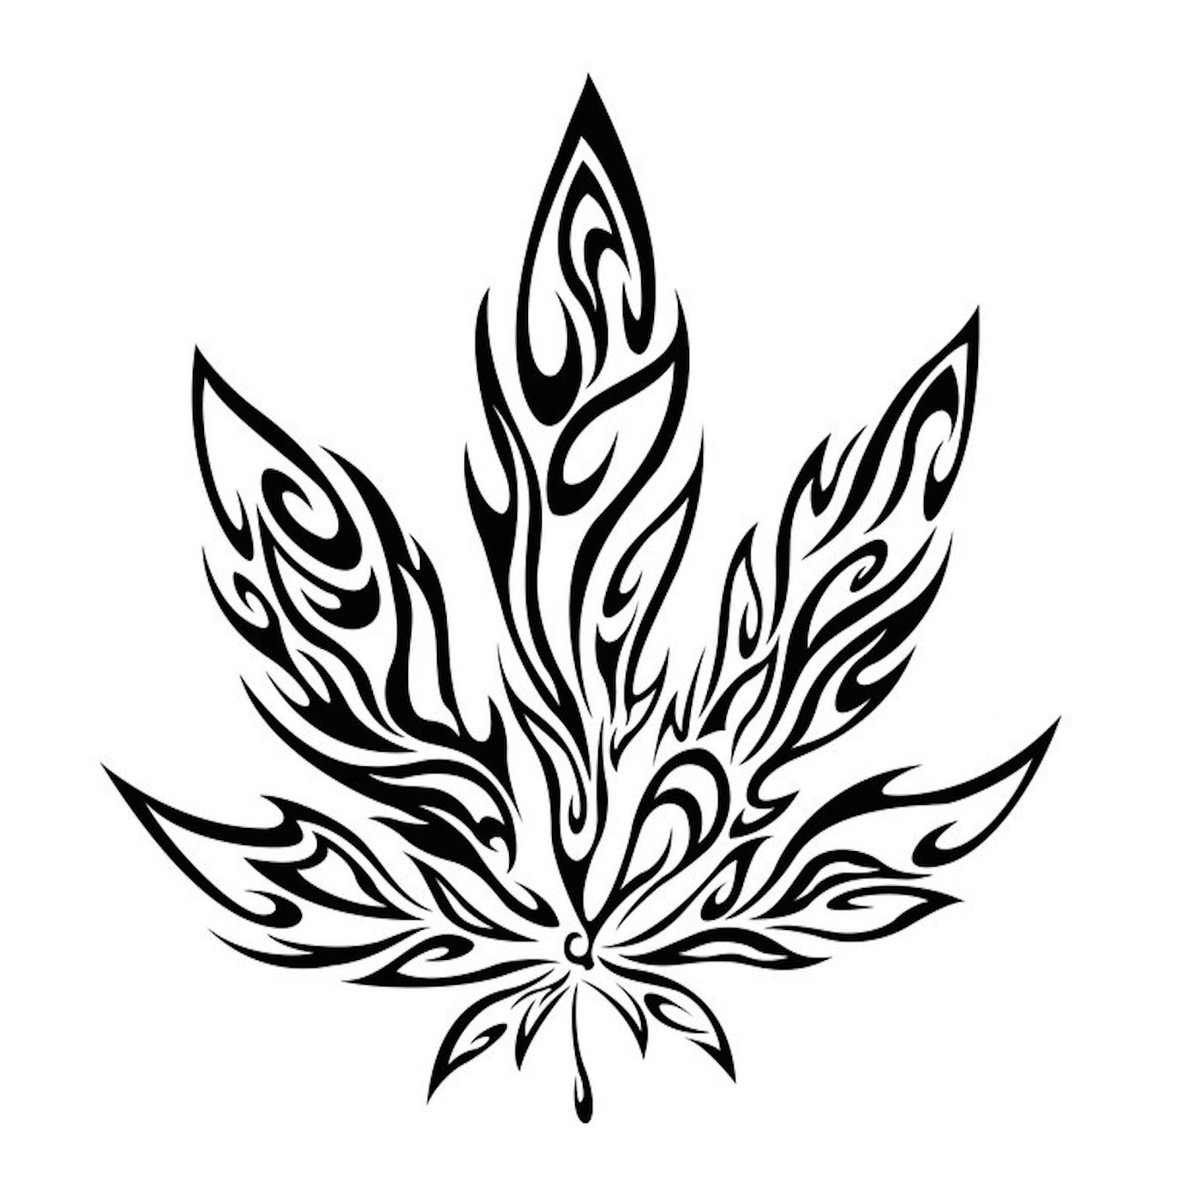 Hype Williams return with first new album in five years